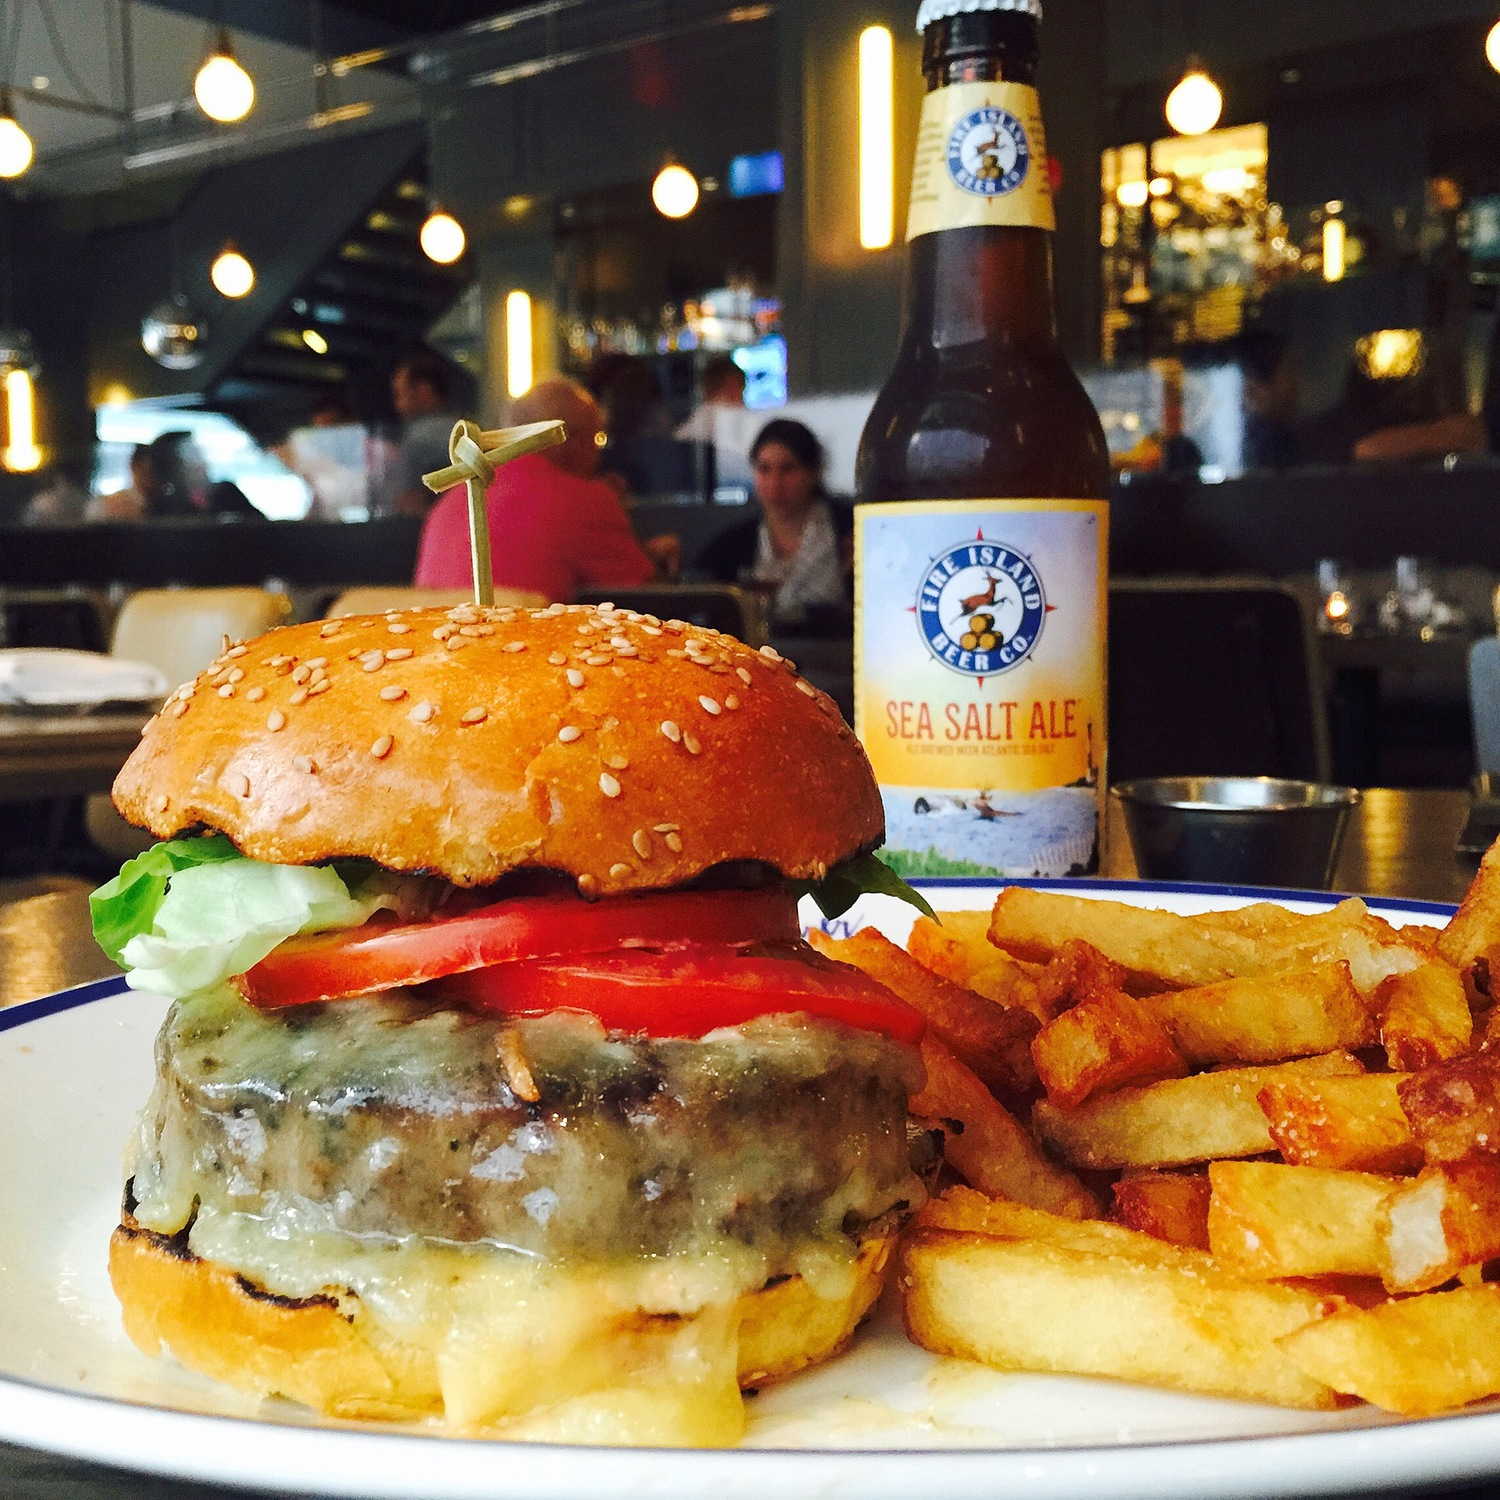 plate with cheeseburger and french fries with a beer